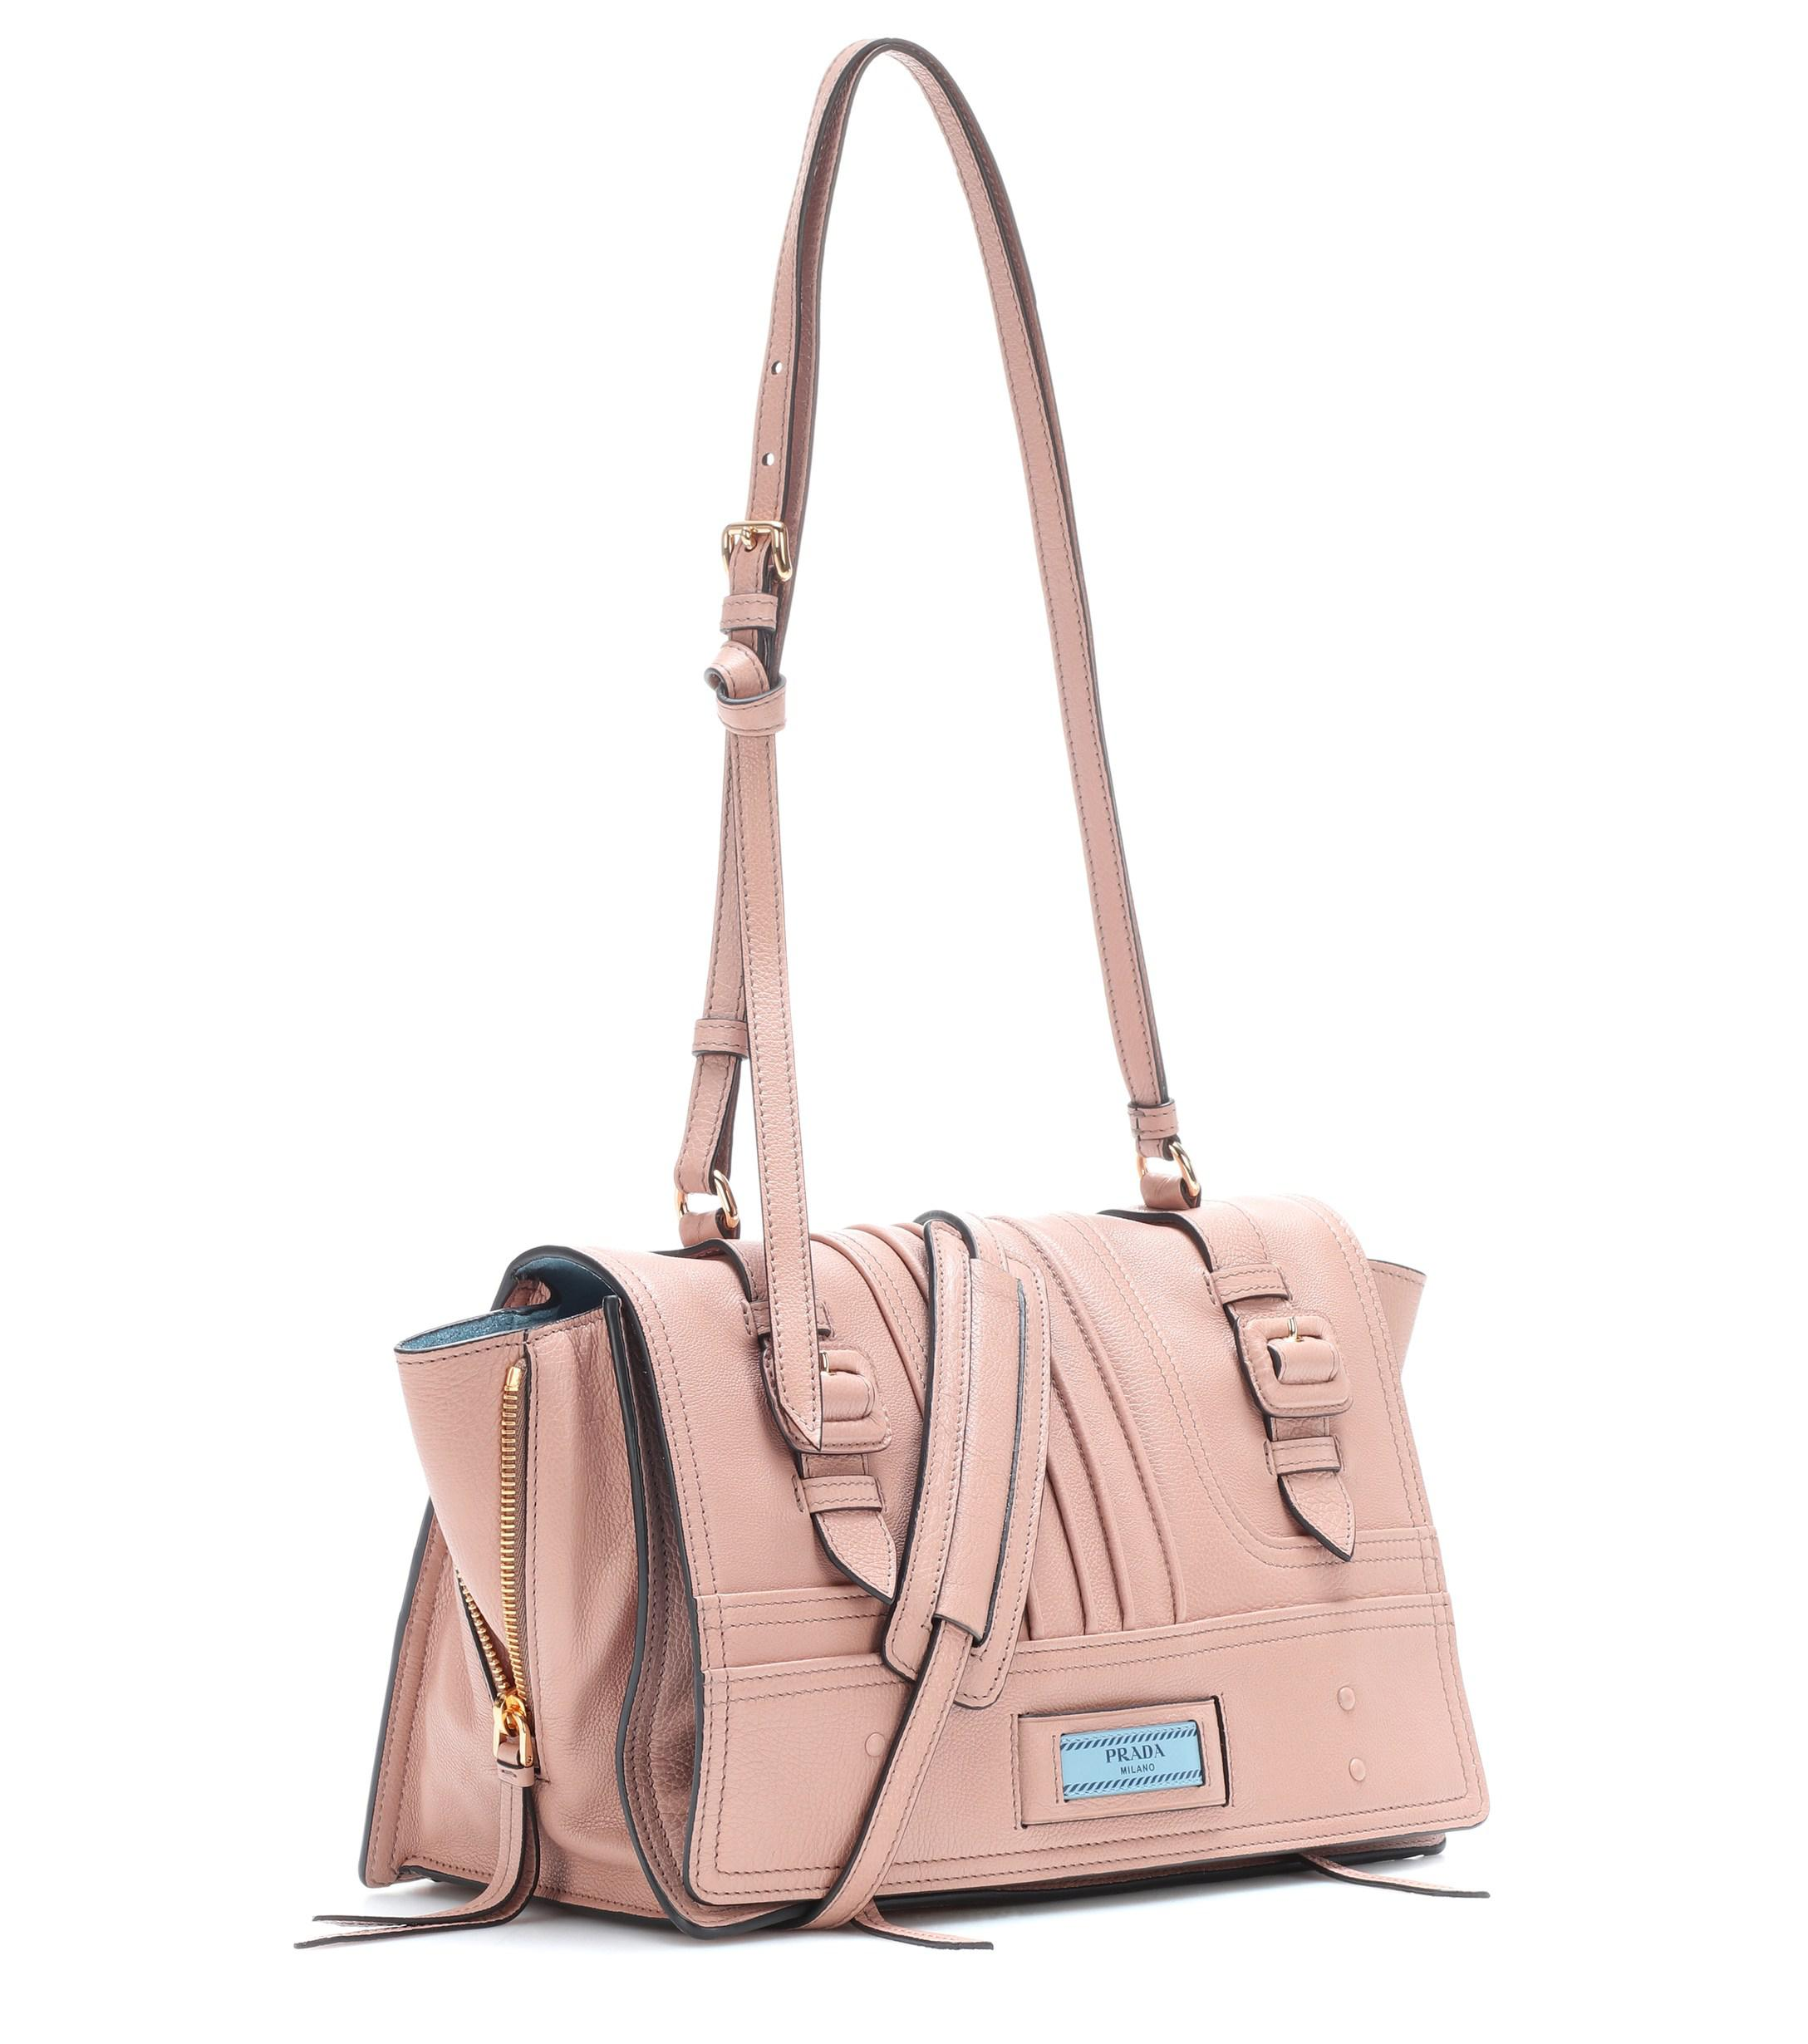 839831cf263a Gallery. Previously sold at: Mytheresa · Women's Leather Bags